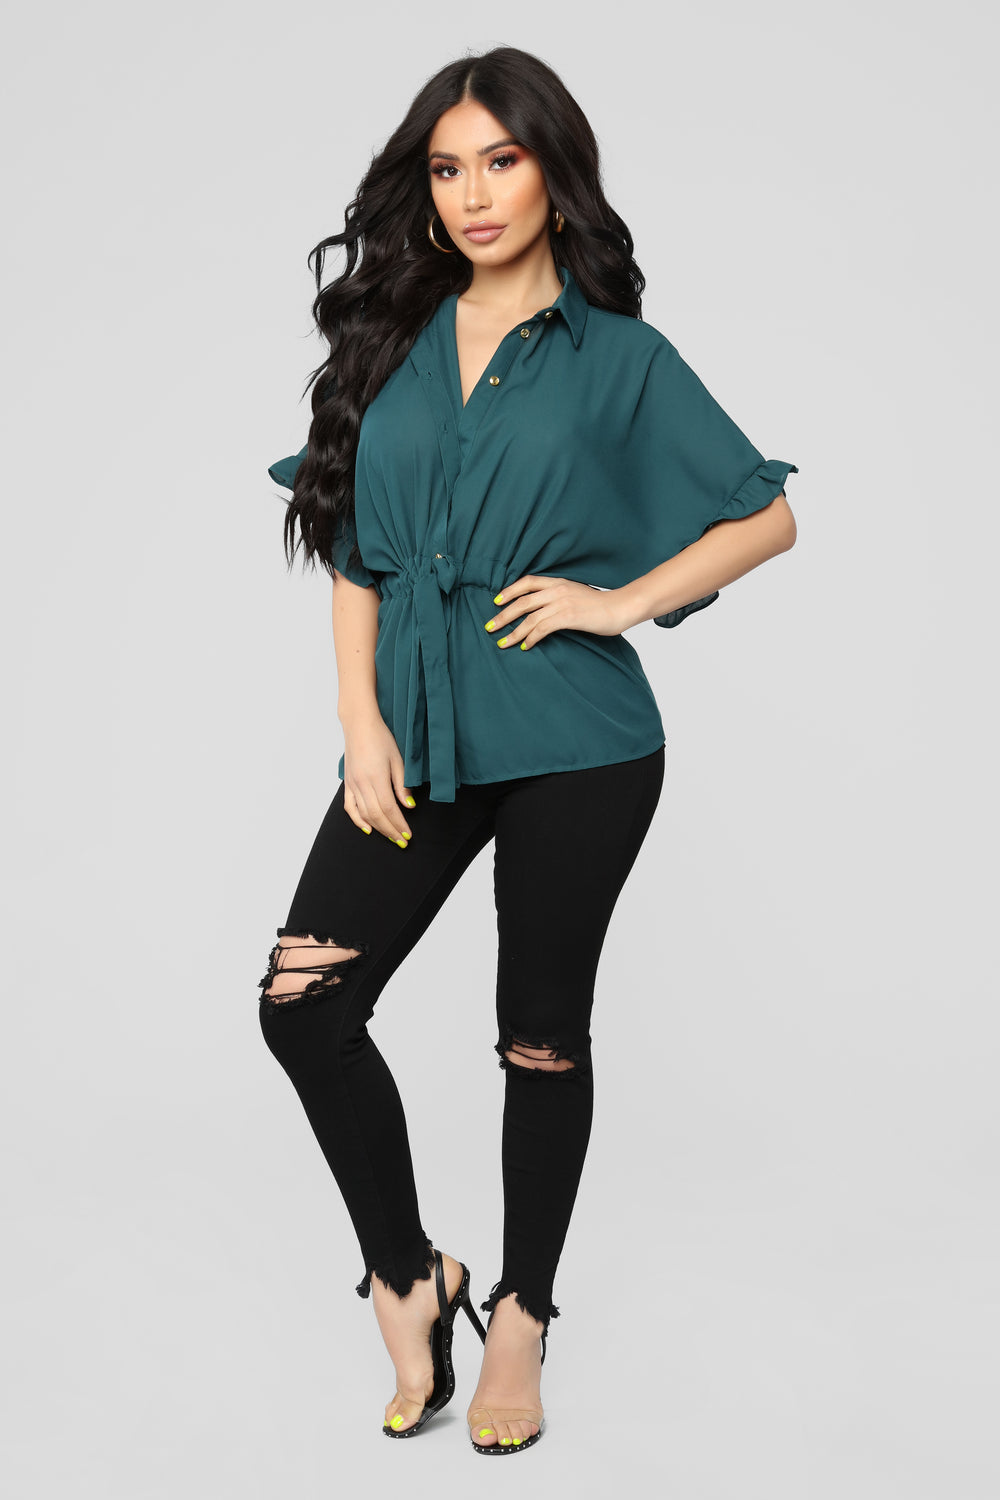 Ruffle Talk Button Down Shirt - Hunter